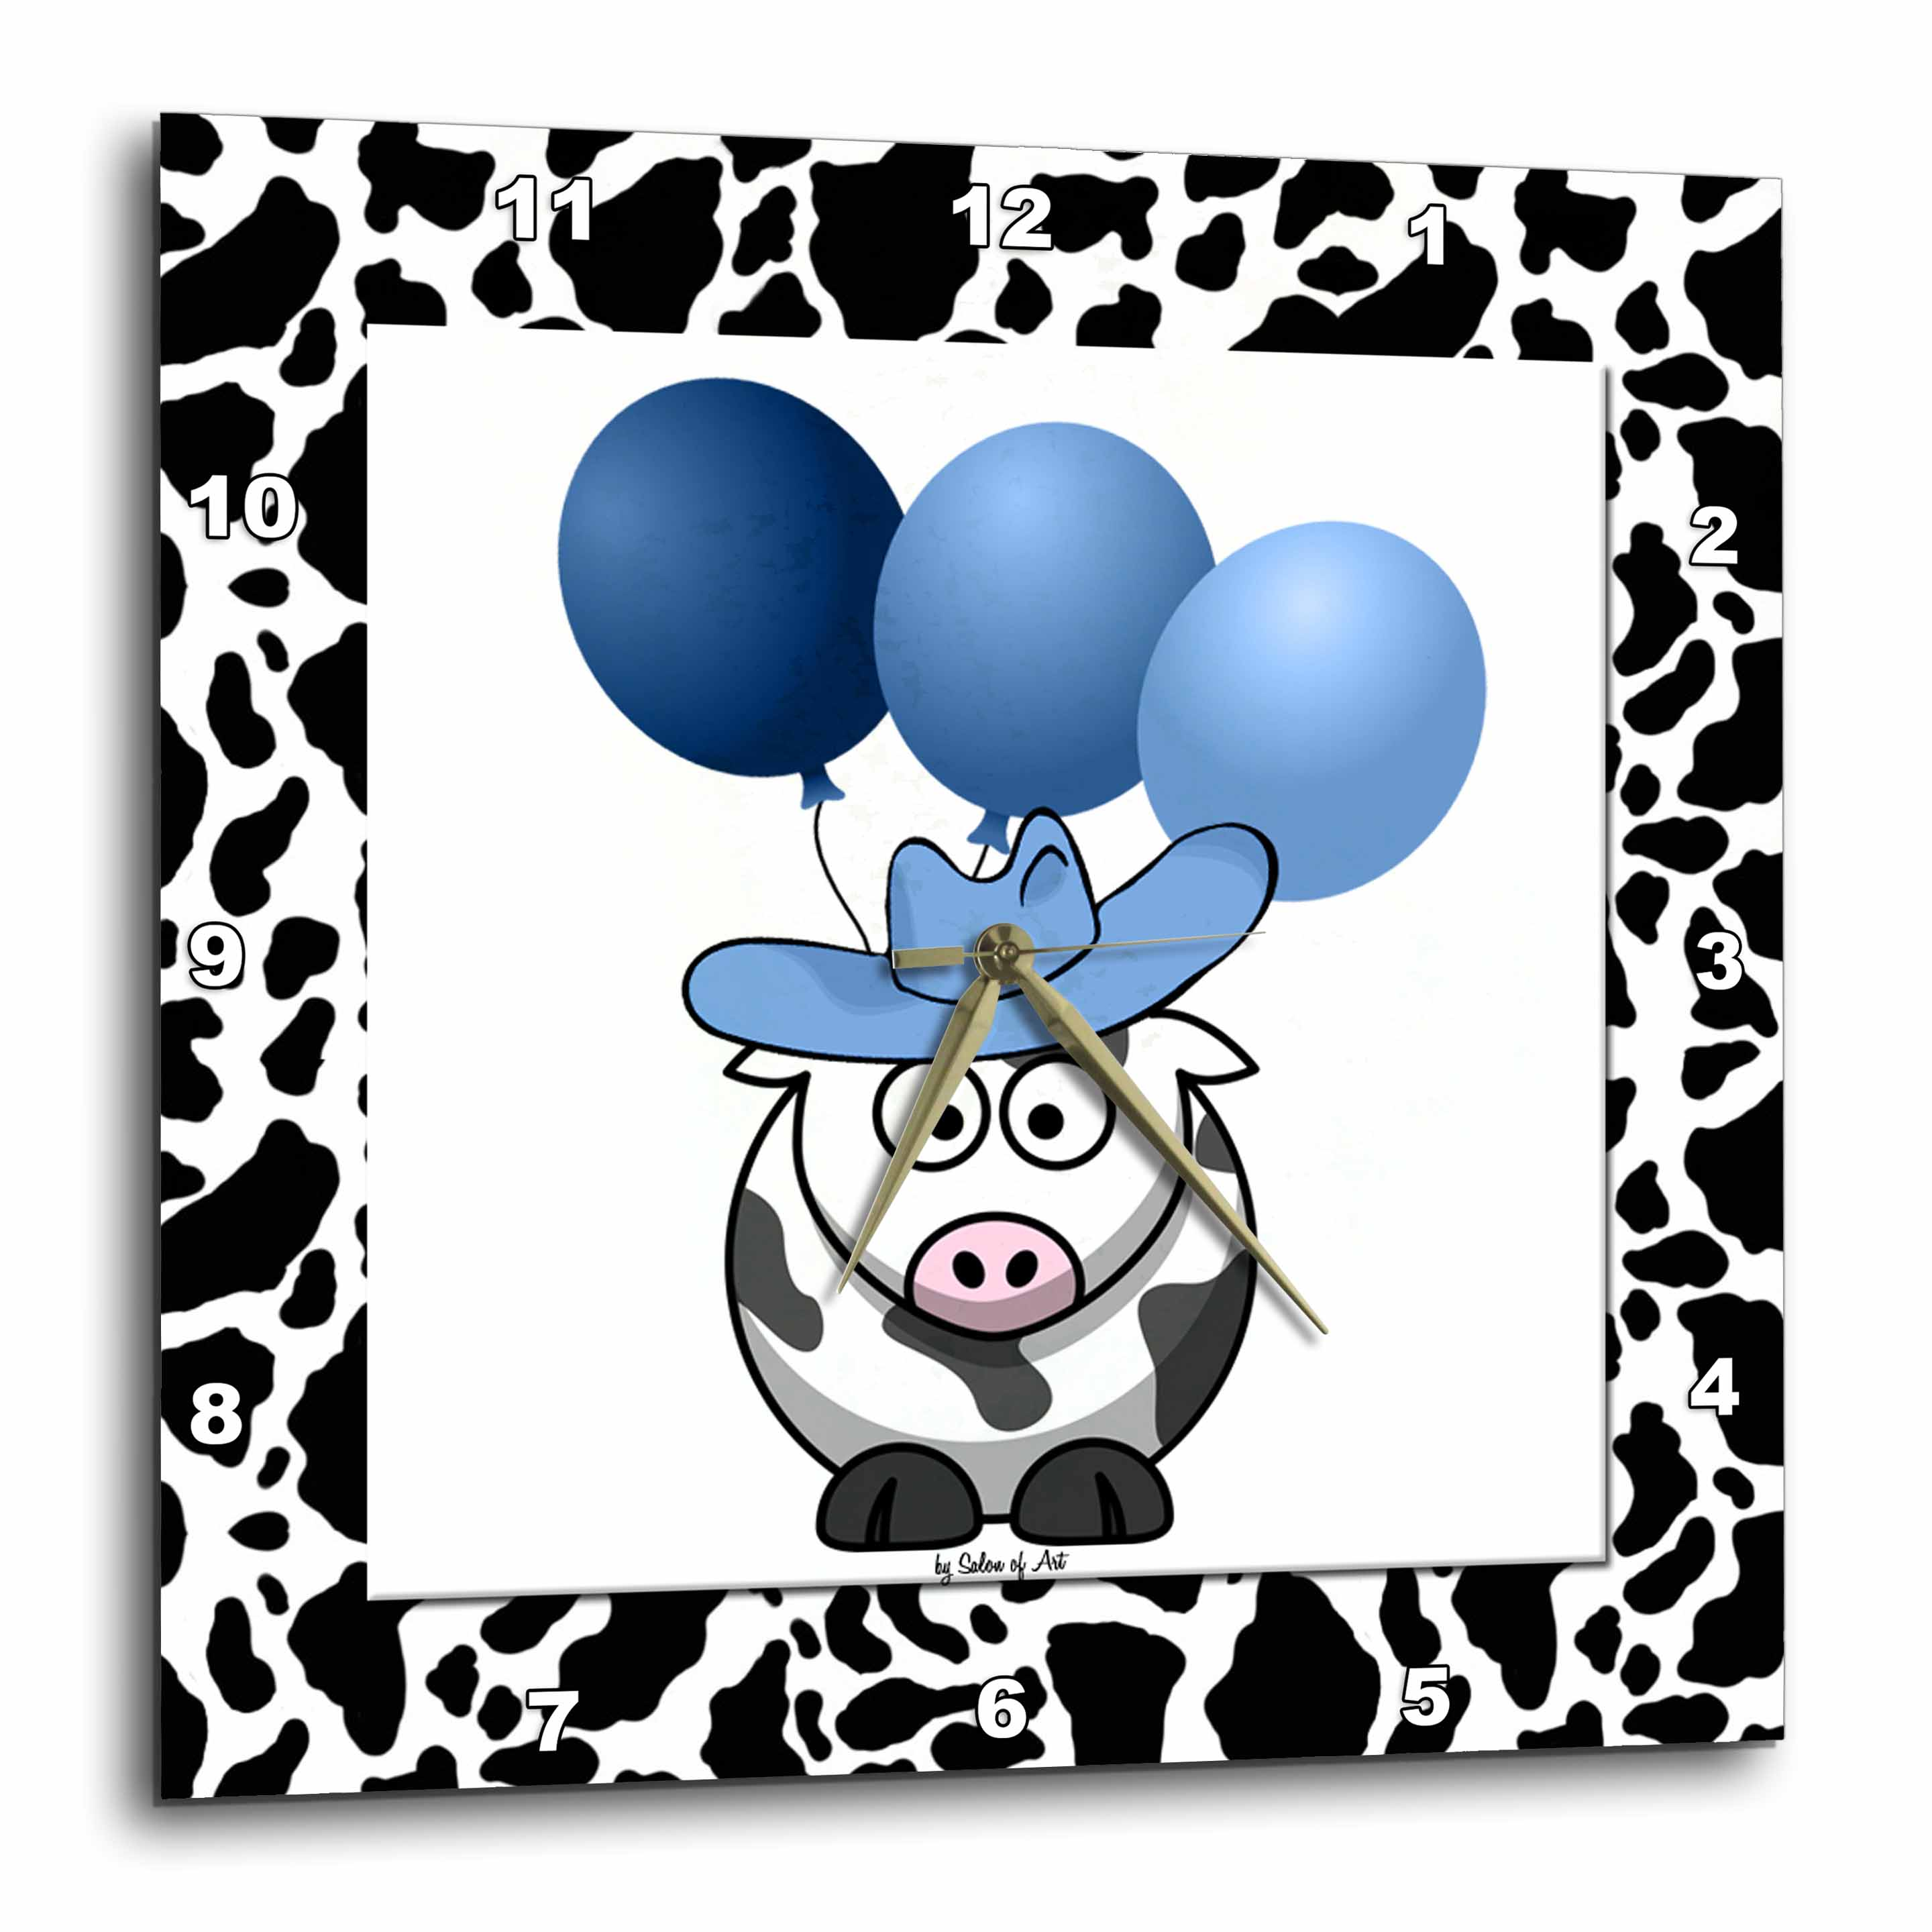 3dRose Western Cow Print with Blue Balloons, Wall Clock, 15 by 15-inch